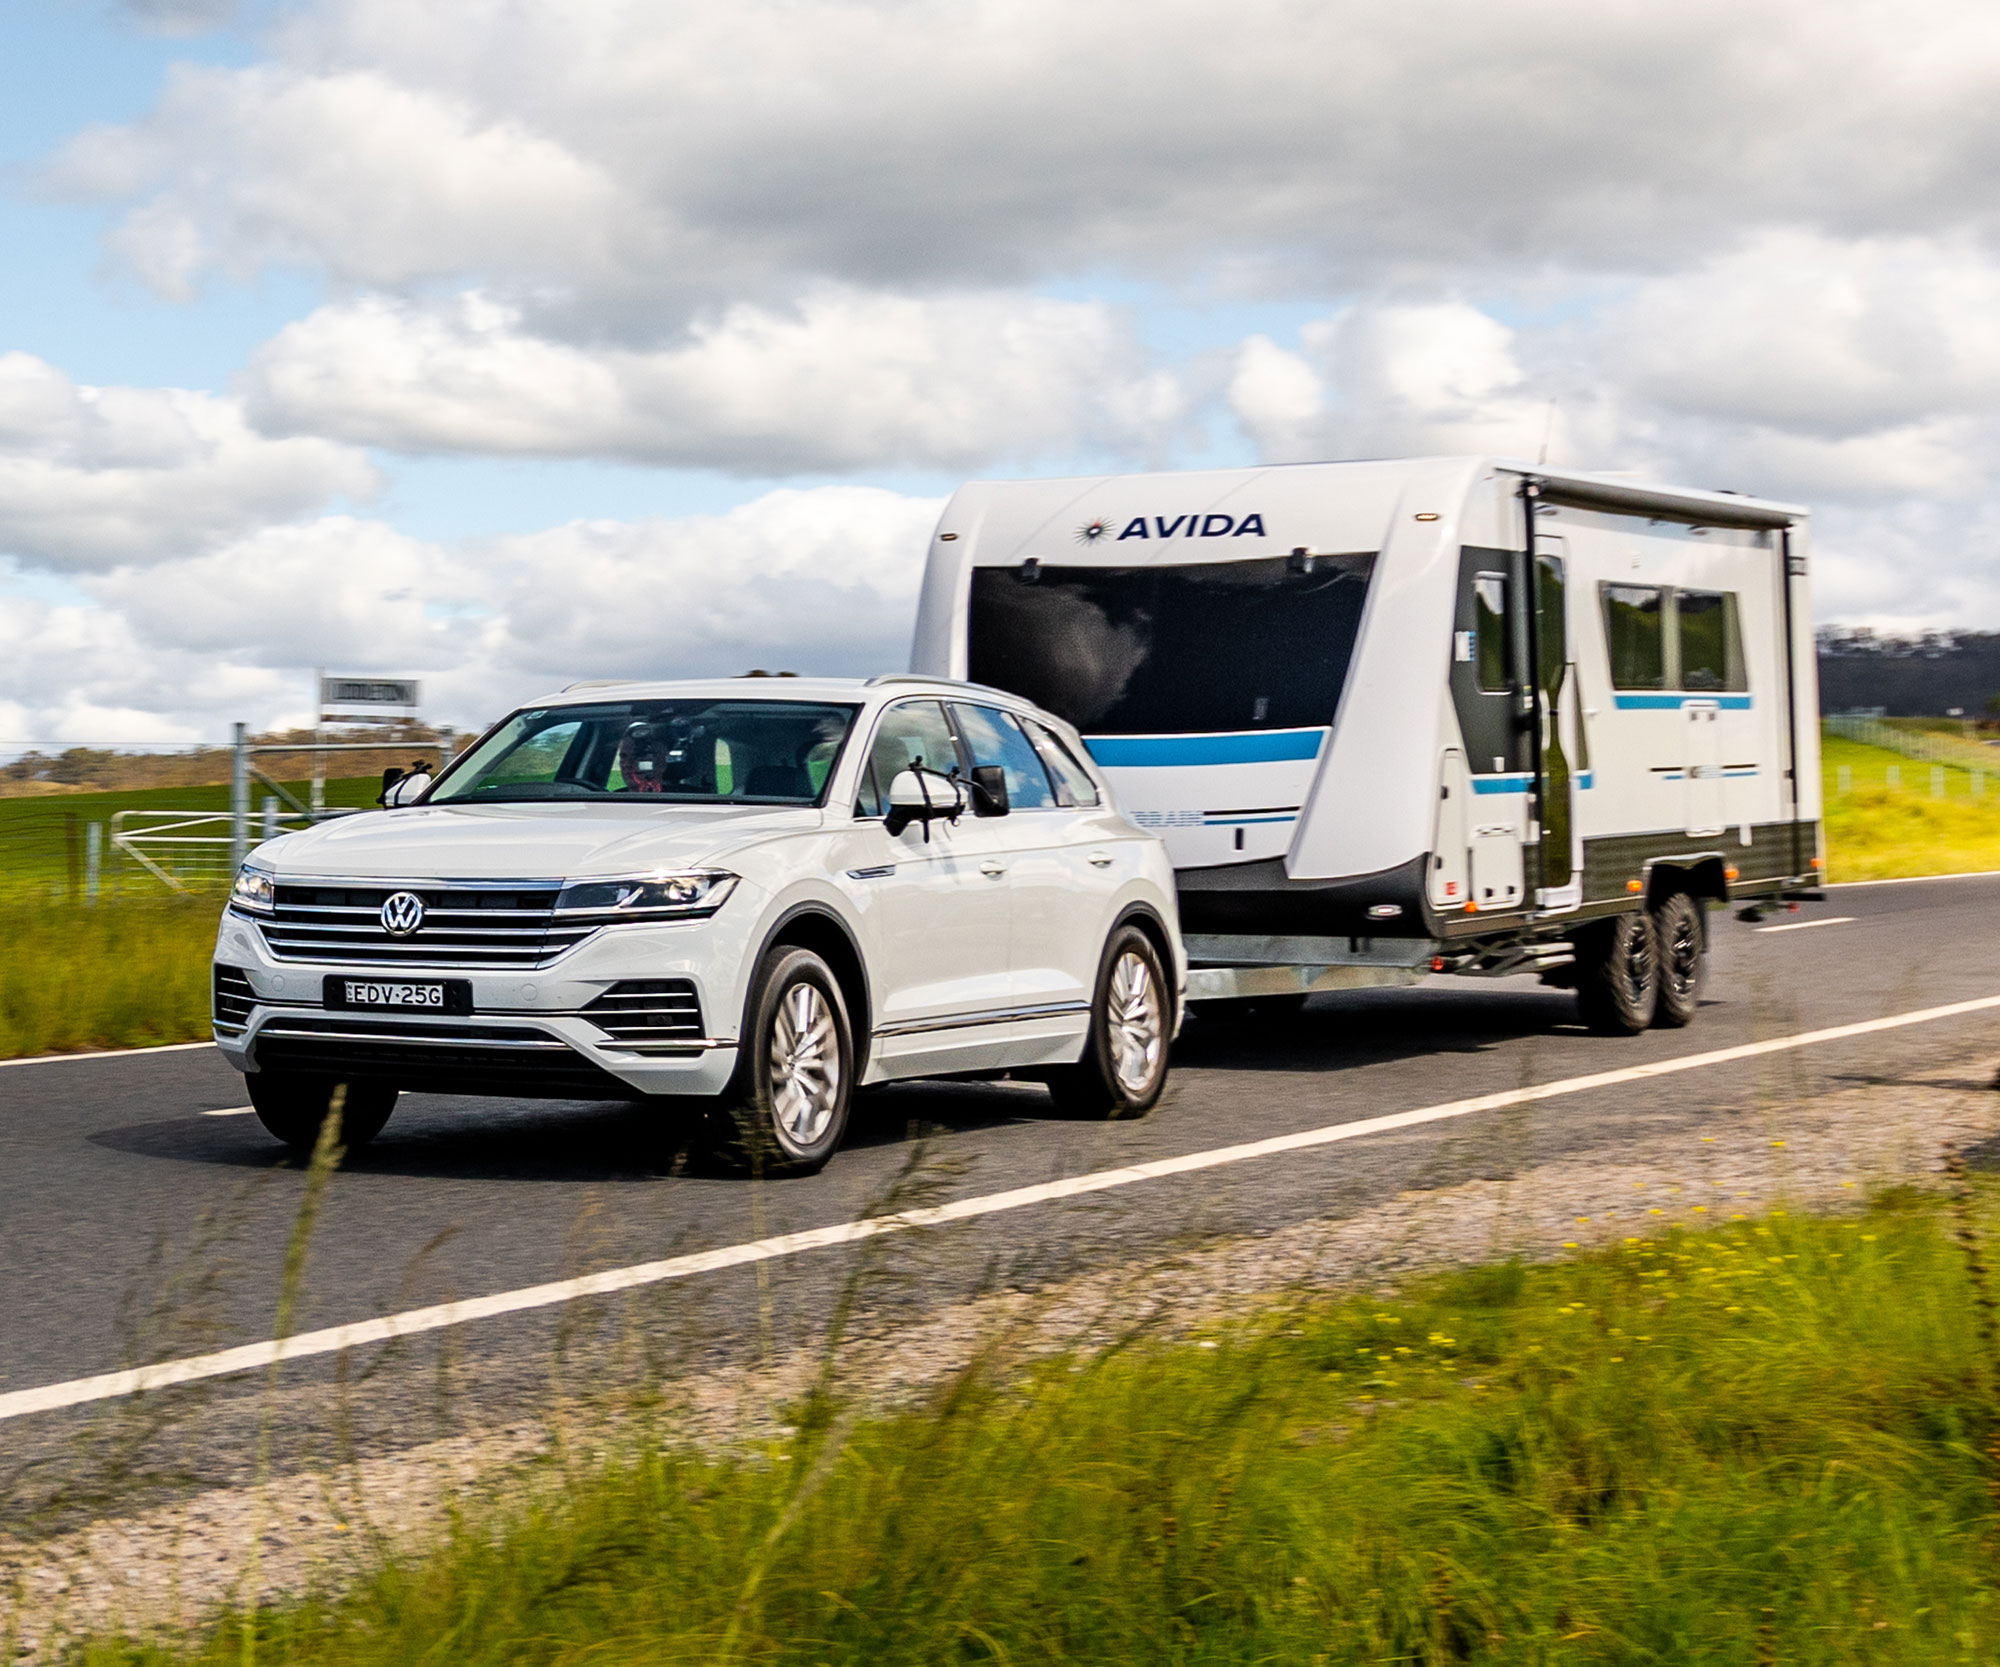 Rvd051 Tow Test Hybrid Tech Comparo German Three Way Audi V Porche V Vw 3c Vw 012 Cropped